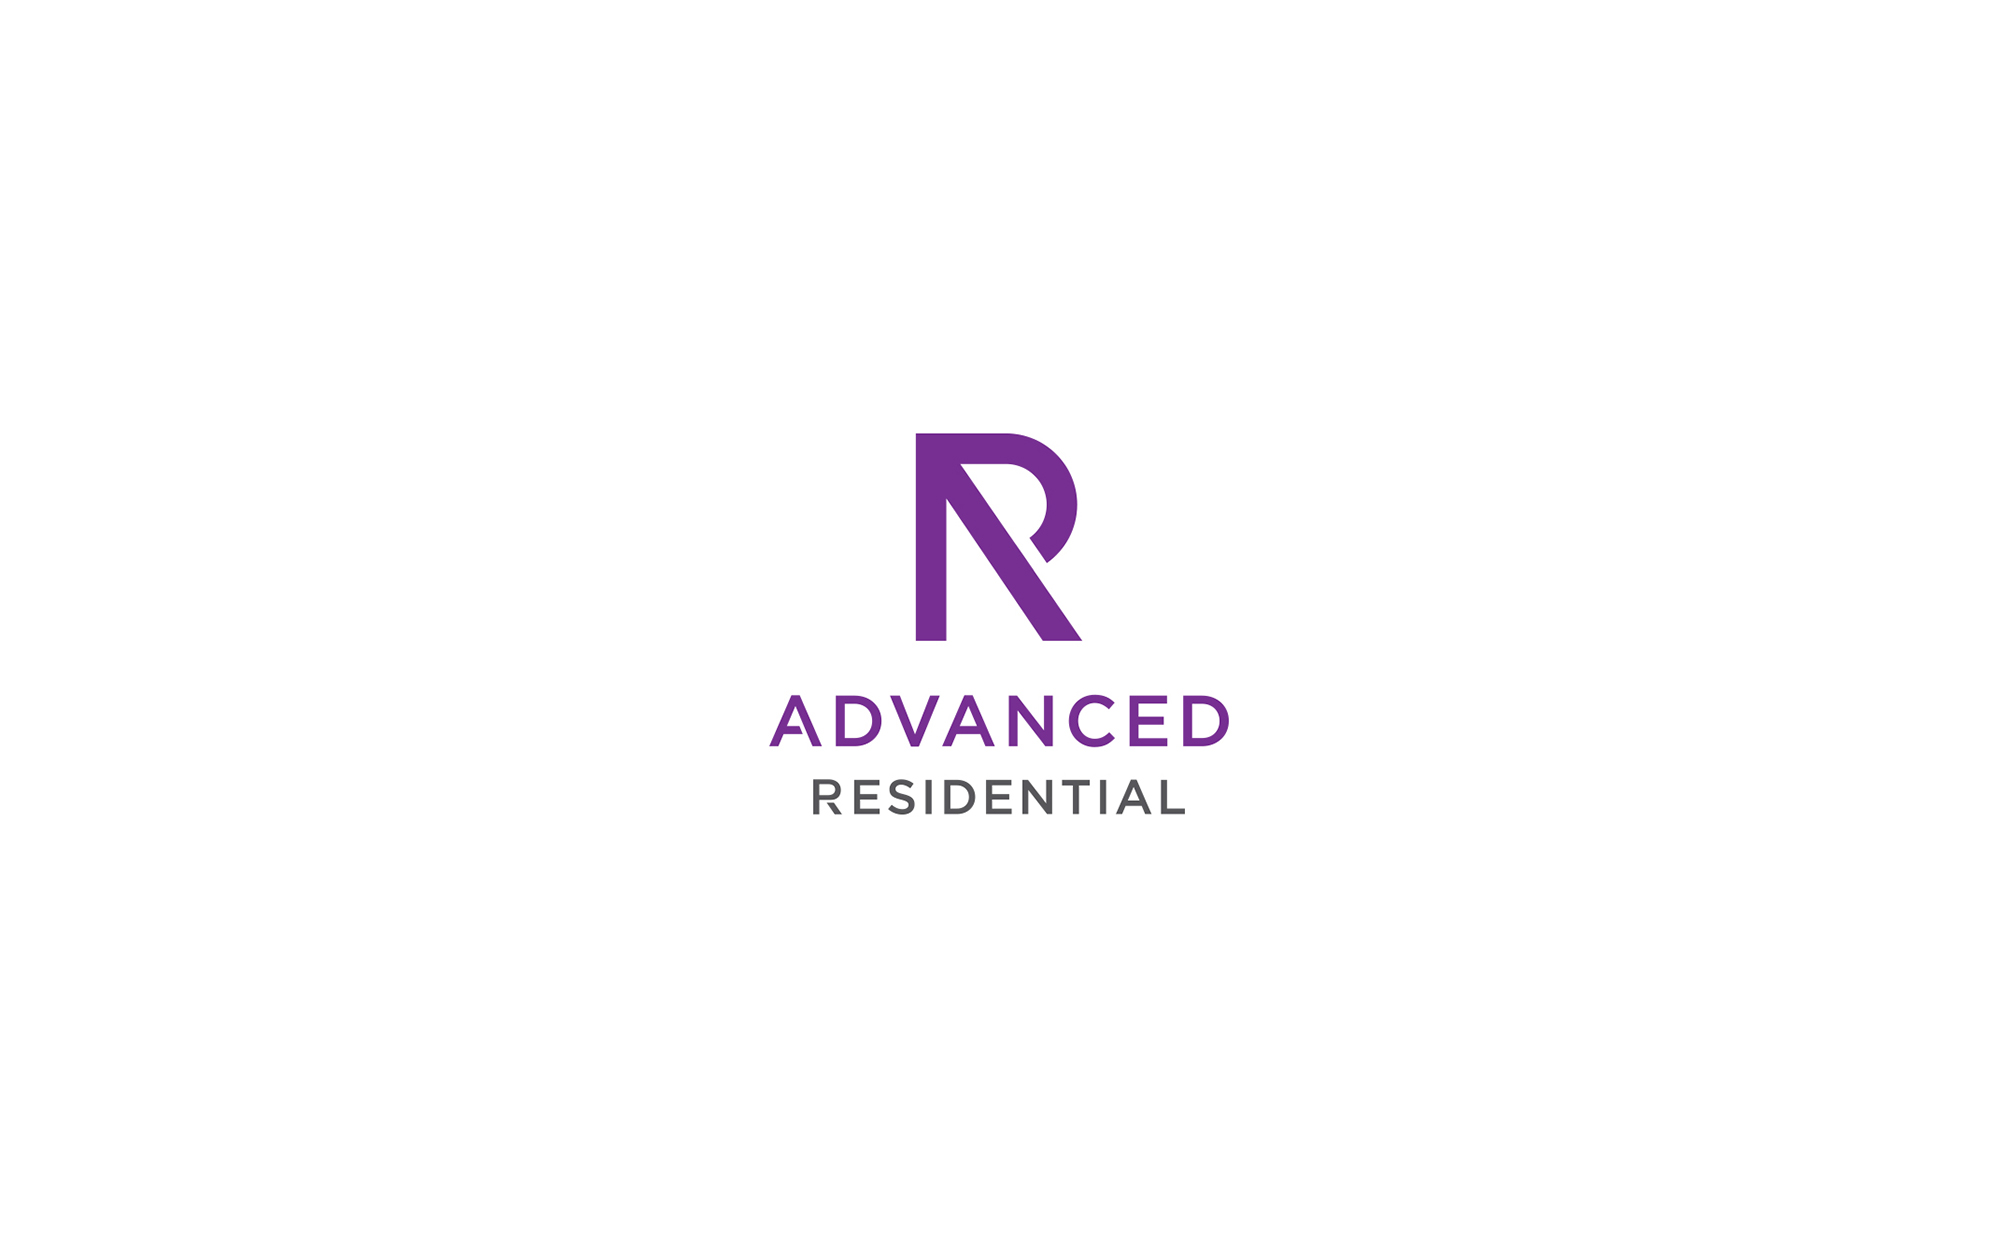 ADVANCED-RESIDENTIAL1